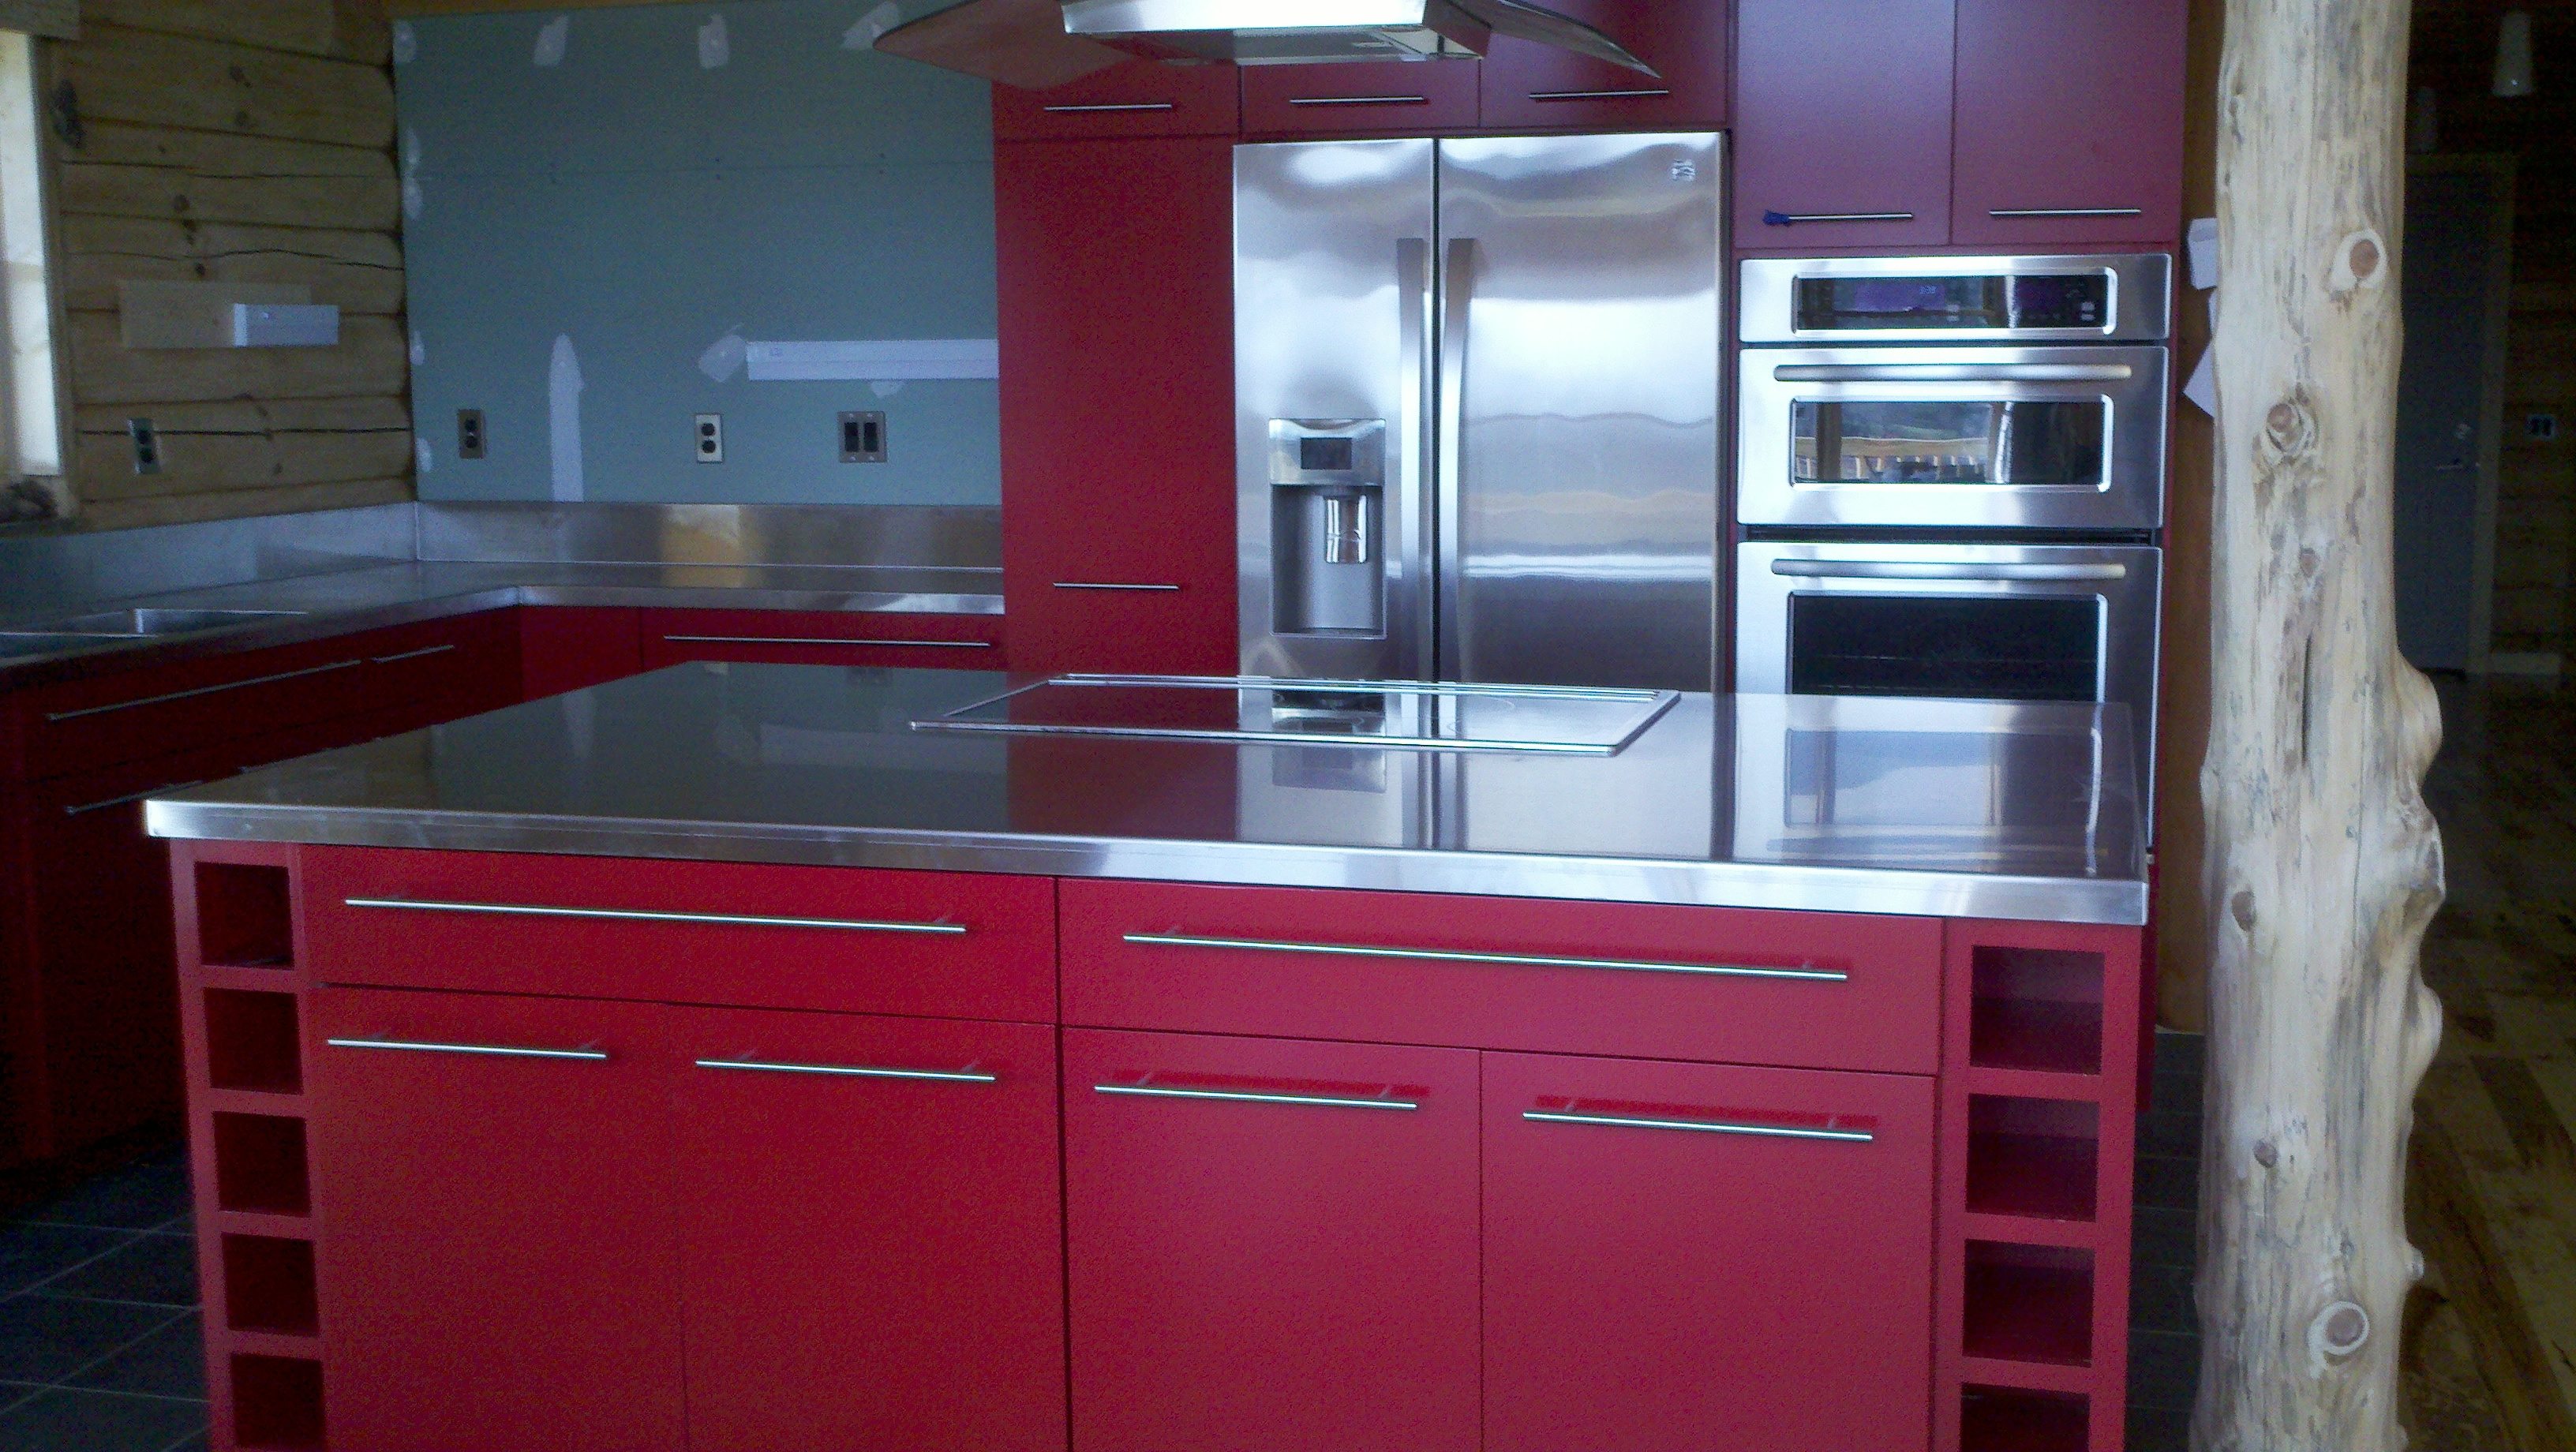 rend shape gloss with ideas vintage stylish kitchen cabinet from also licious rectangular crane finish modern islands countertop countertops wooden high floor island steel pictures stainless sx and zaveloff enchanting